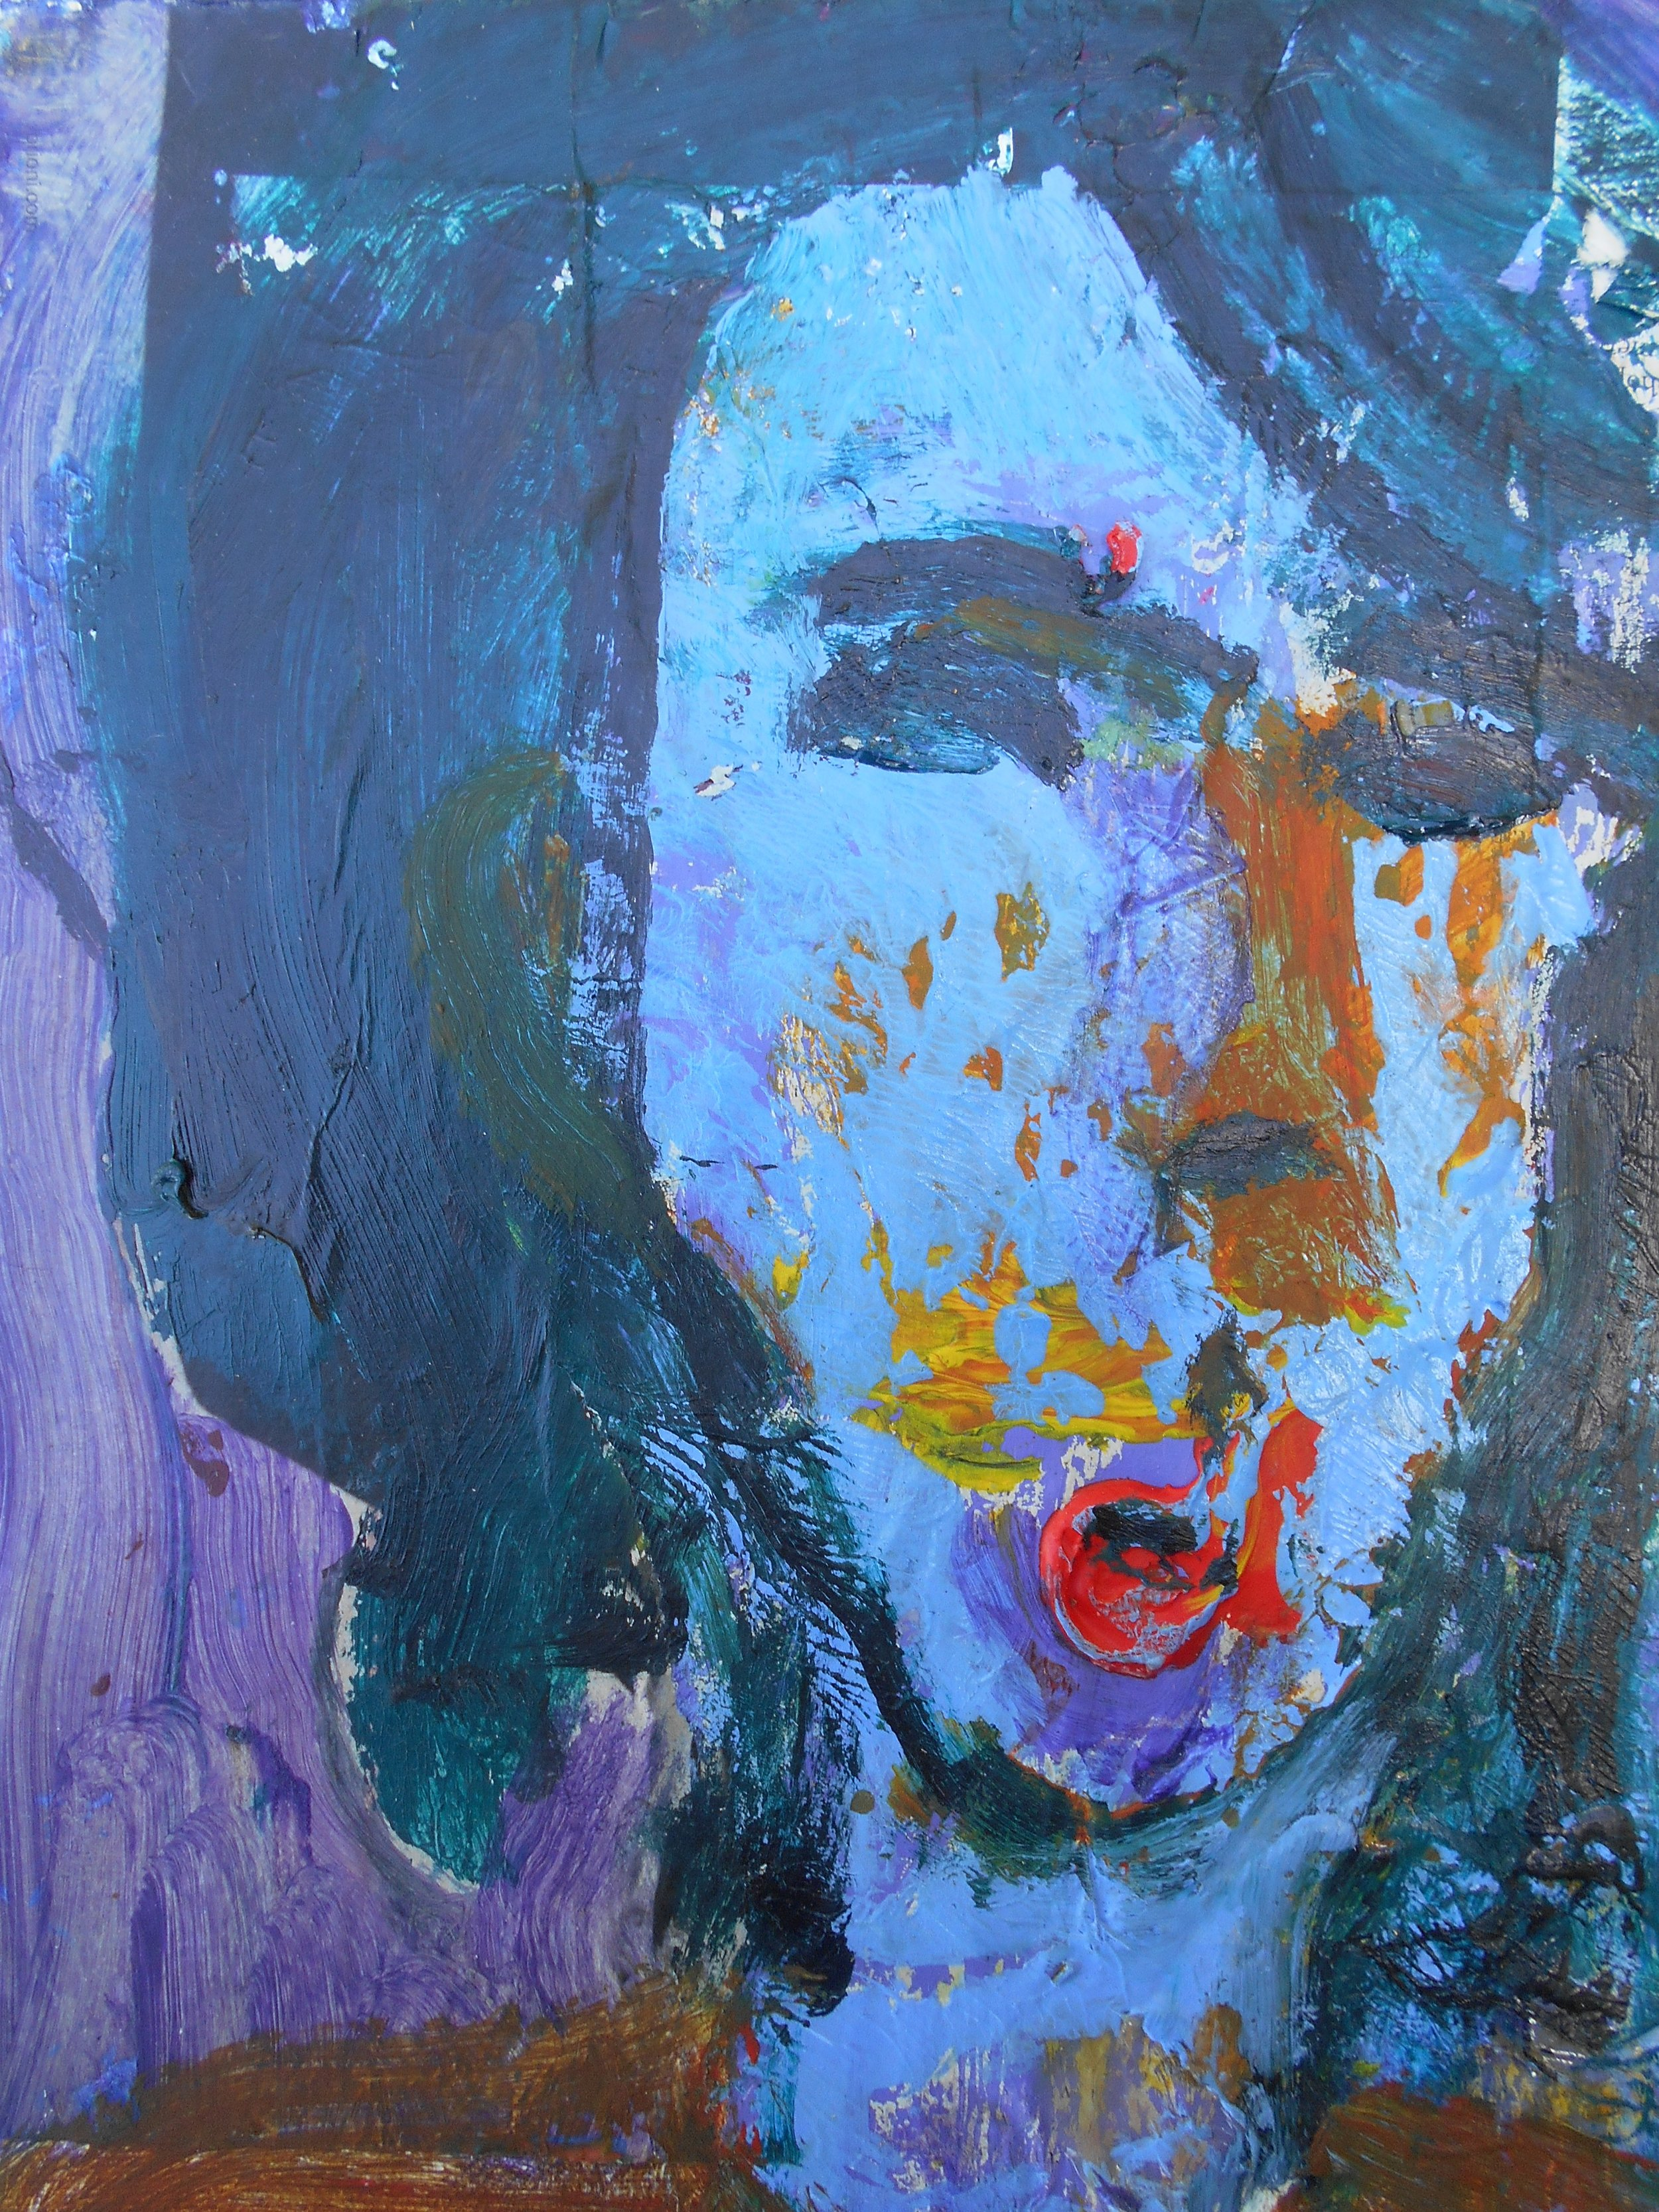 #7 Stephen Perrone - Woman with Red Mouth - 2010 - 12x9 - a on c _ paper - $250.JPG